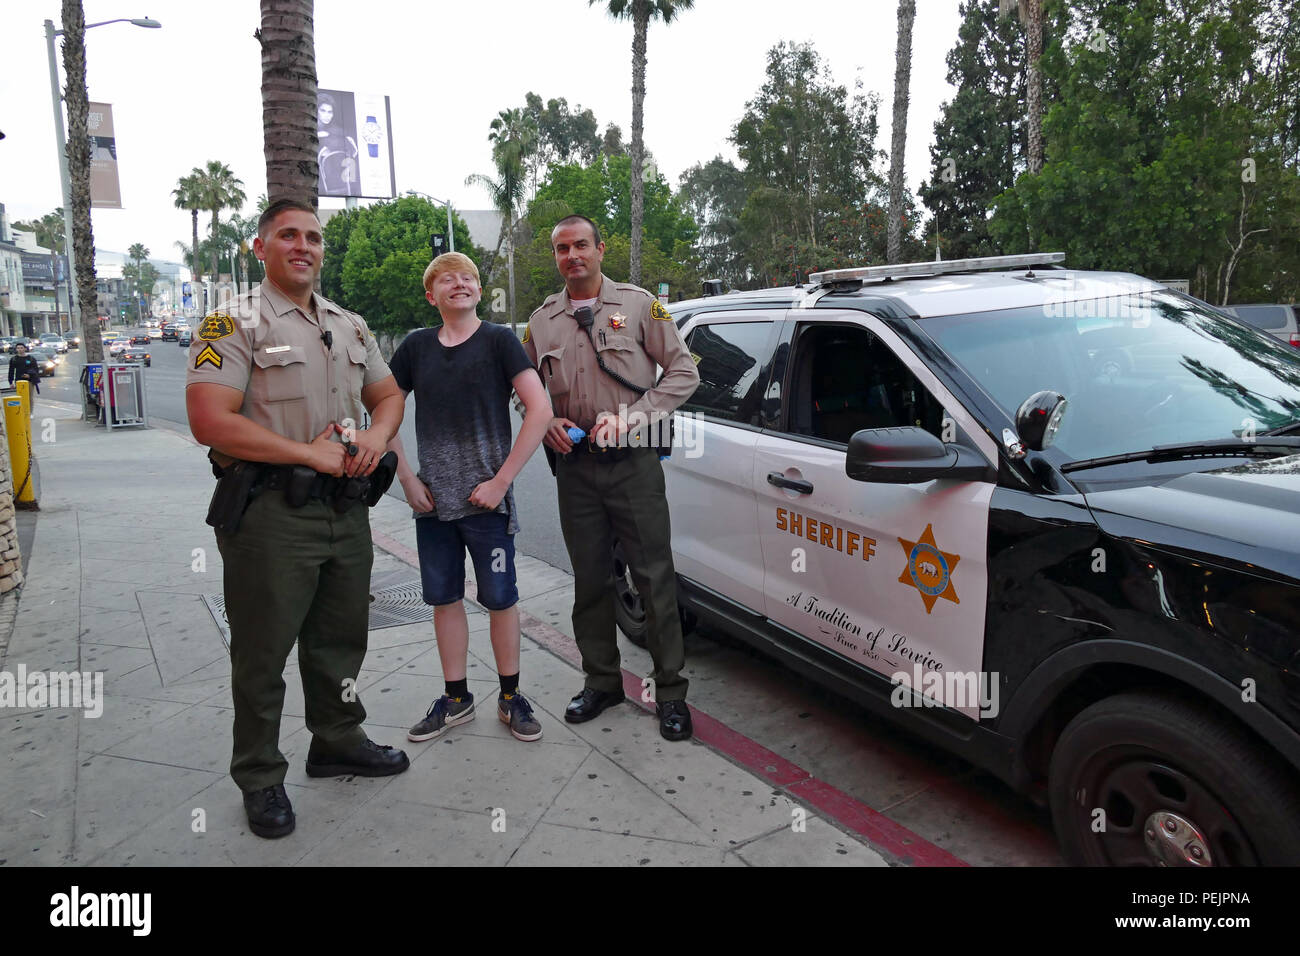 Boy poses with two police officers in Los Angeles California U.S.A. - Stock Image